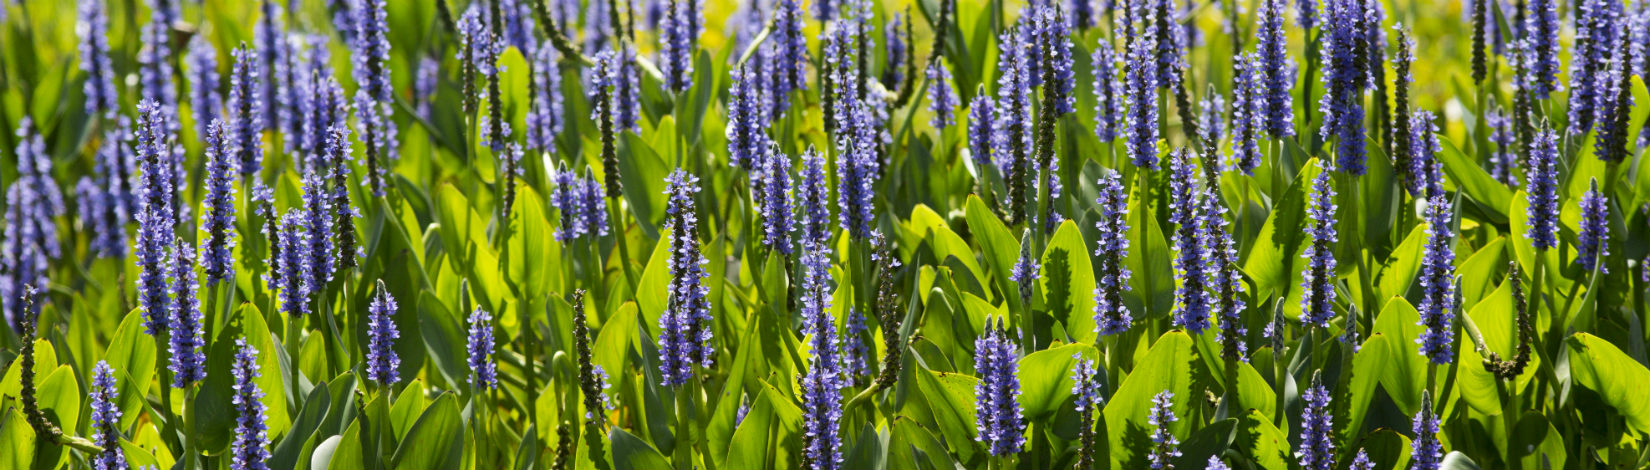 Photo of Pickerelweed, Pontederia chordata, in bloom